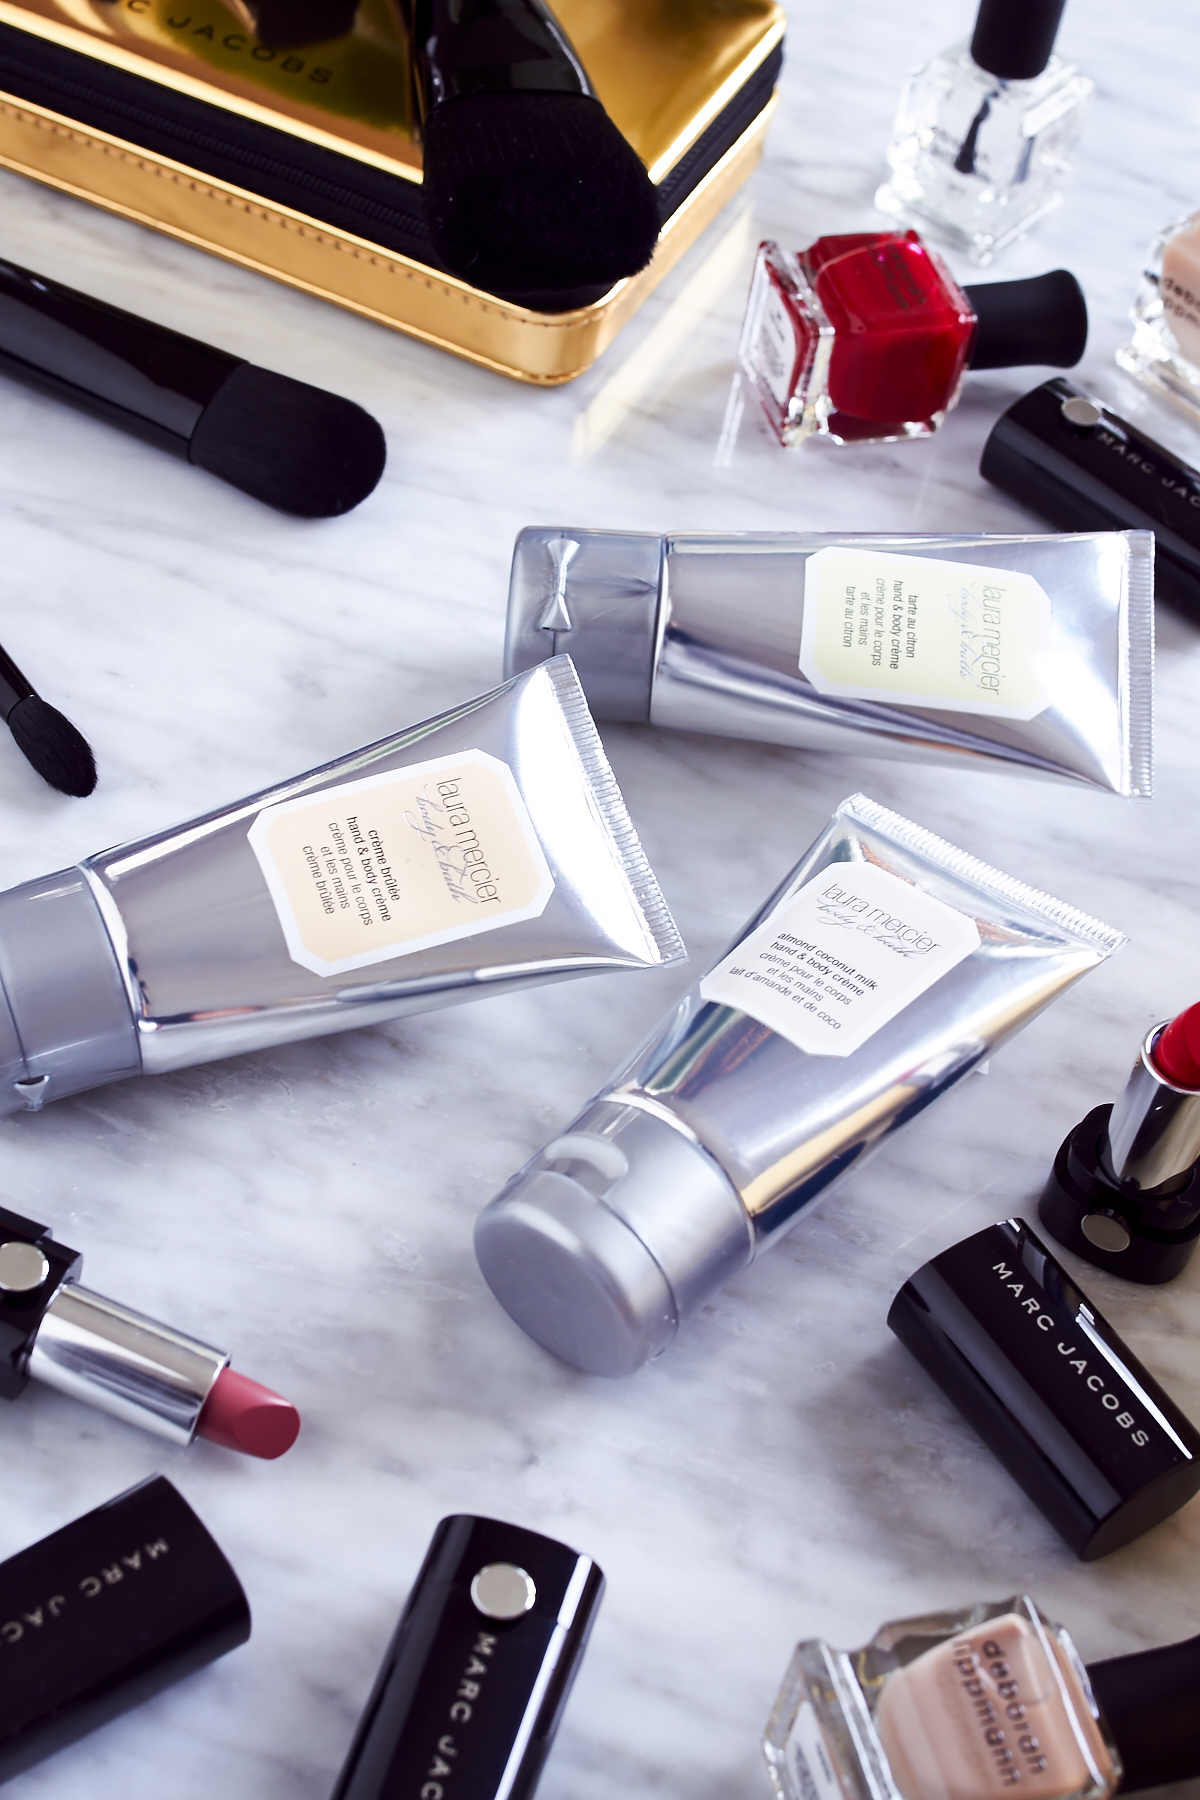 Neiman Marcus Holiday Gifts, Beauty, Laura Mercier Hand Creme